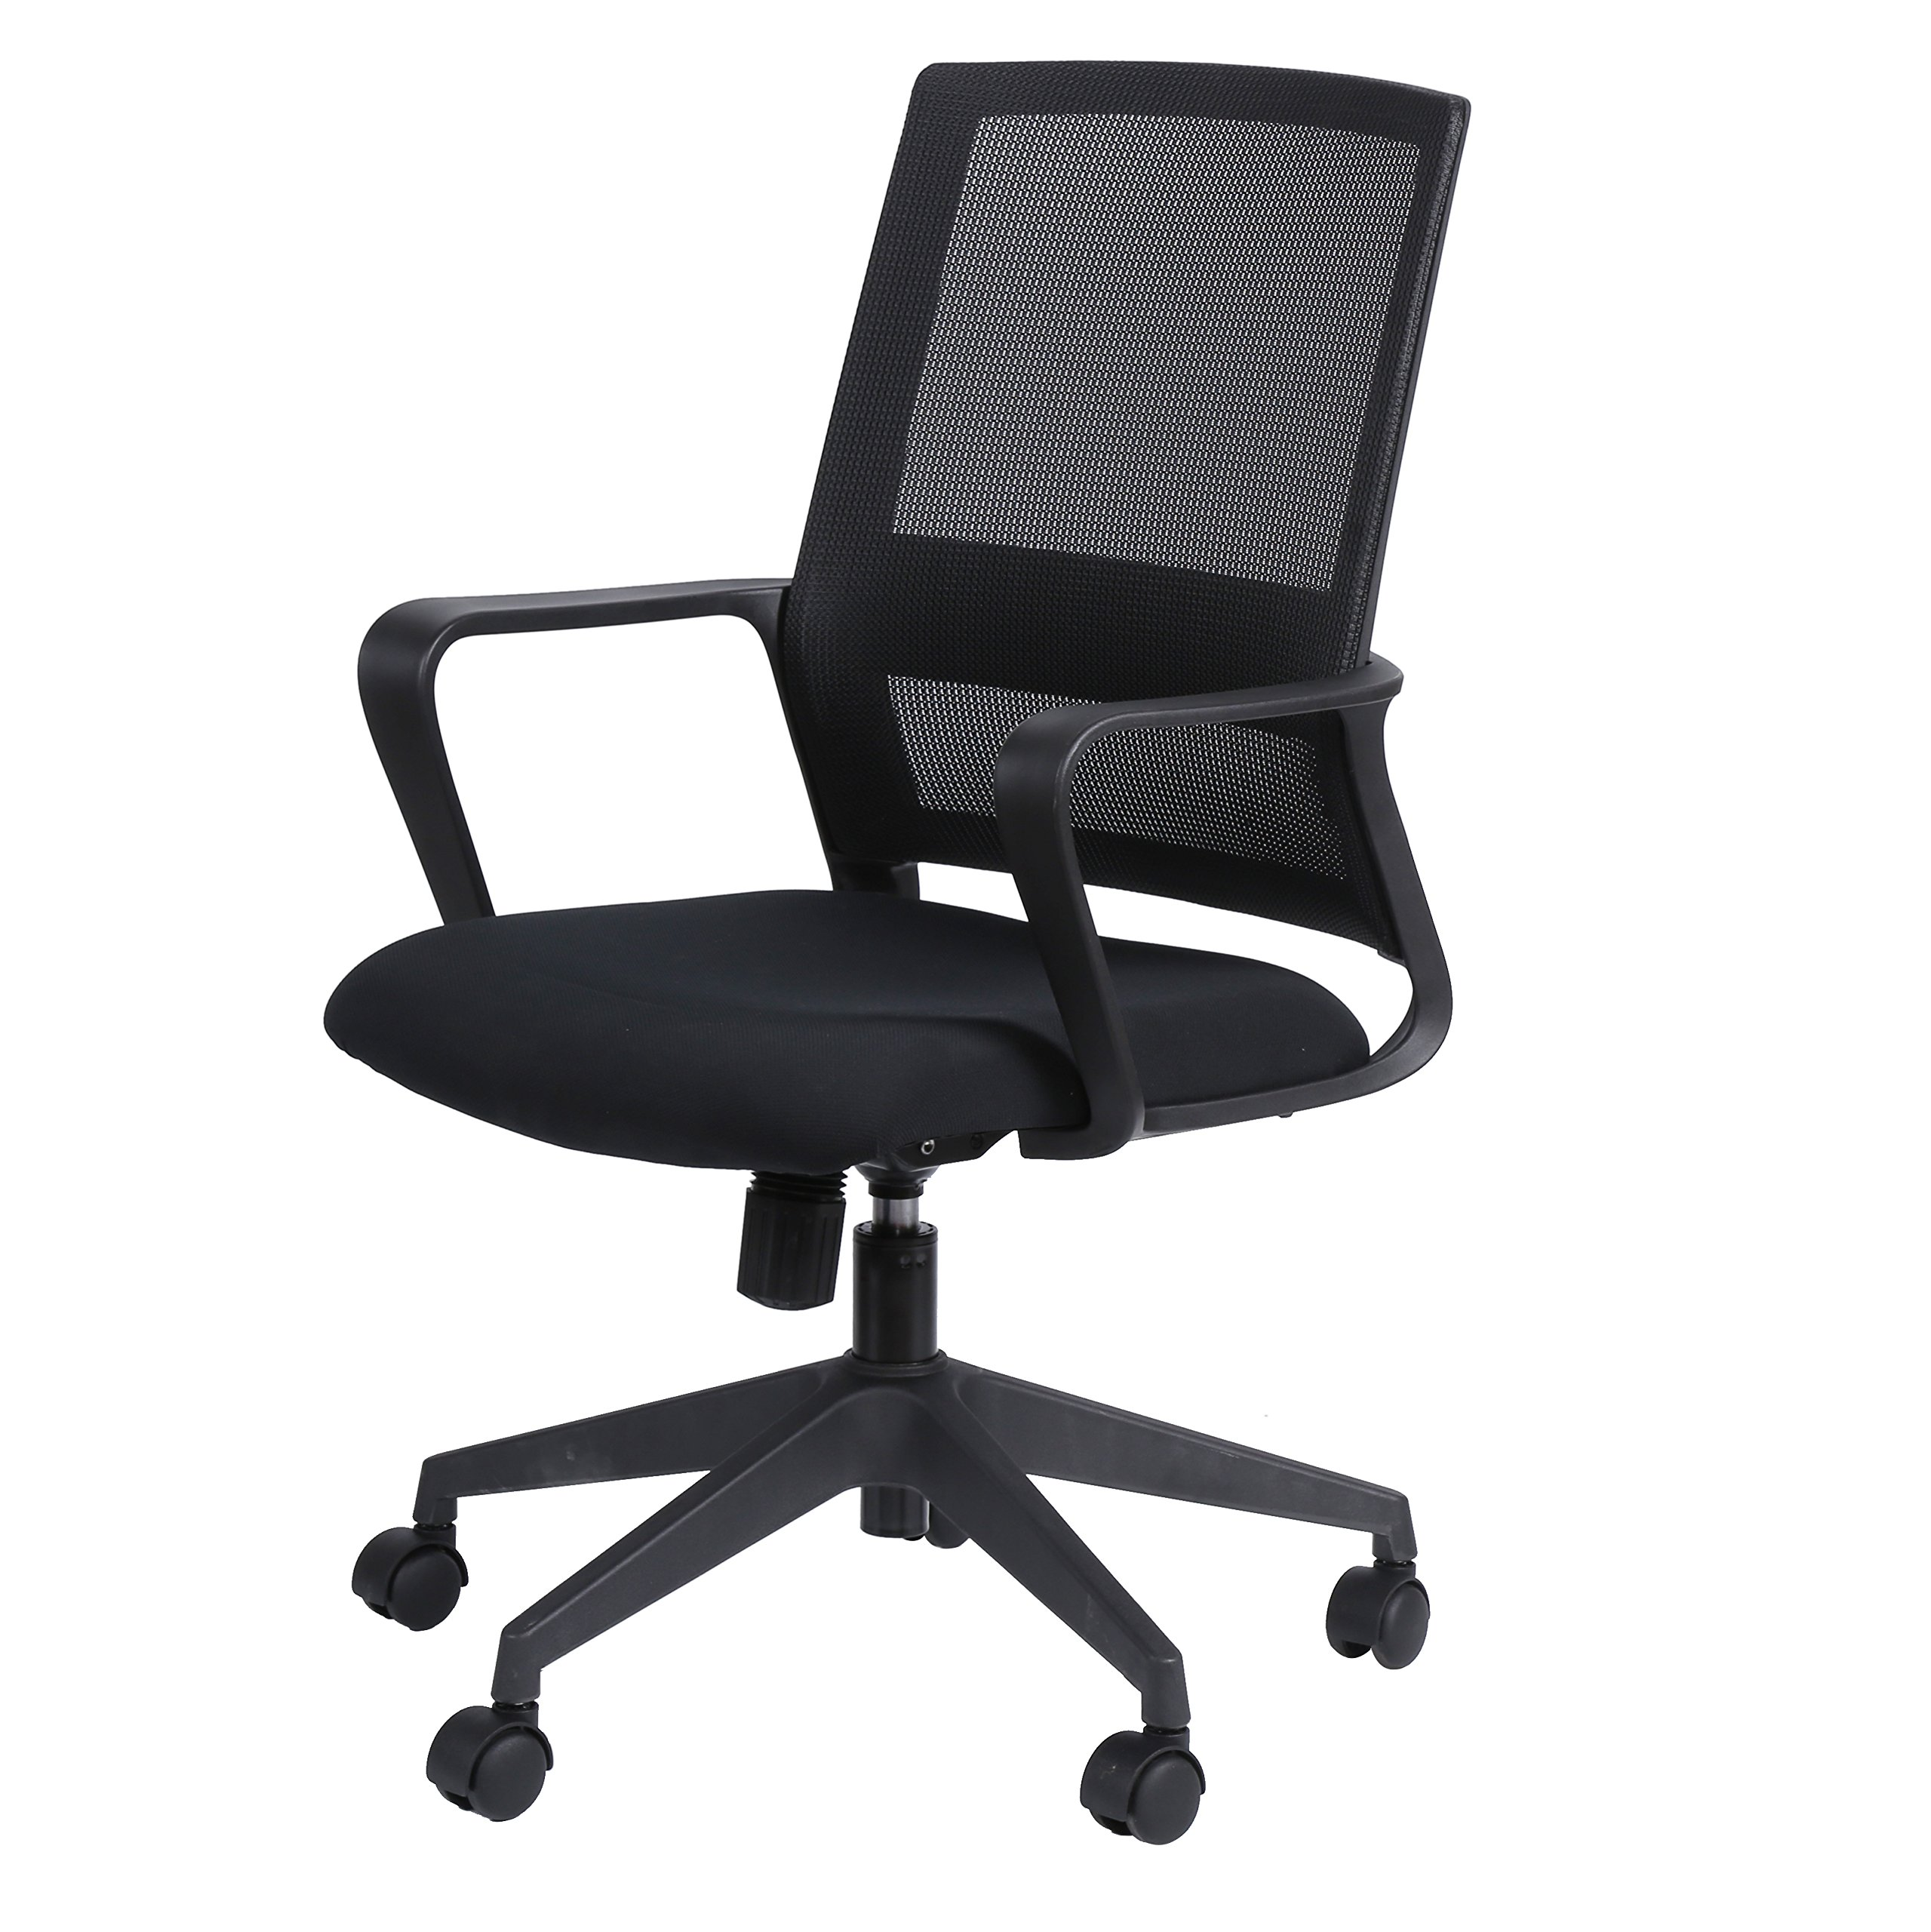 KELLIGO Home Office Task Mesh Chair Adjustable Mid-back Chair Swivel With 2 Arms BLACK